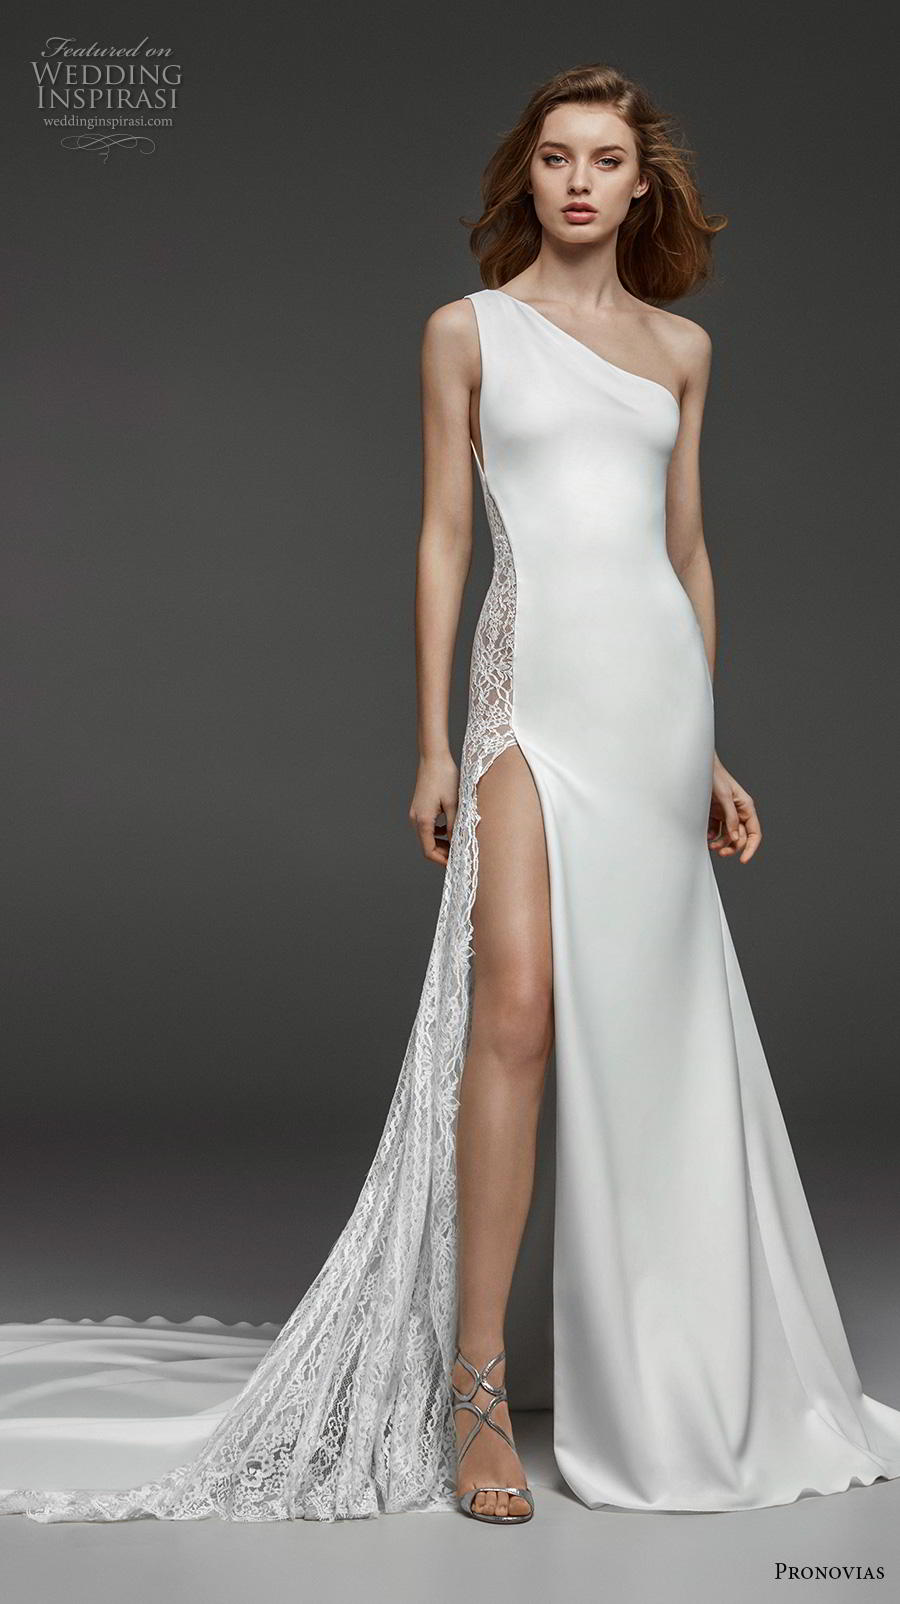 atelier pronovias 2019 bridal sleeveless one shoulder neckline simple minimalist slit skirt modified a  line wedding dress chapel train (13) mv